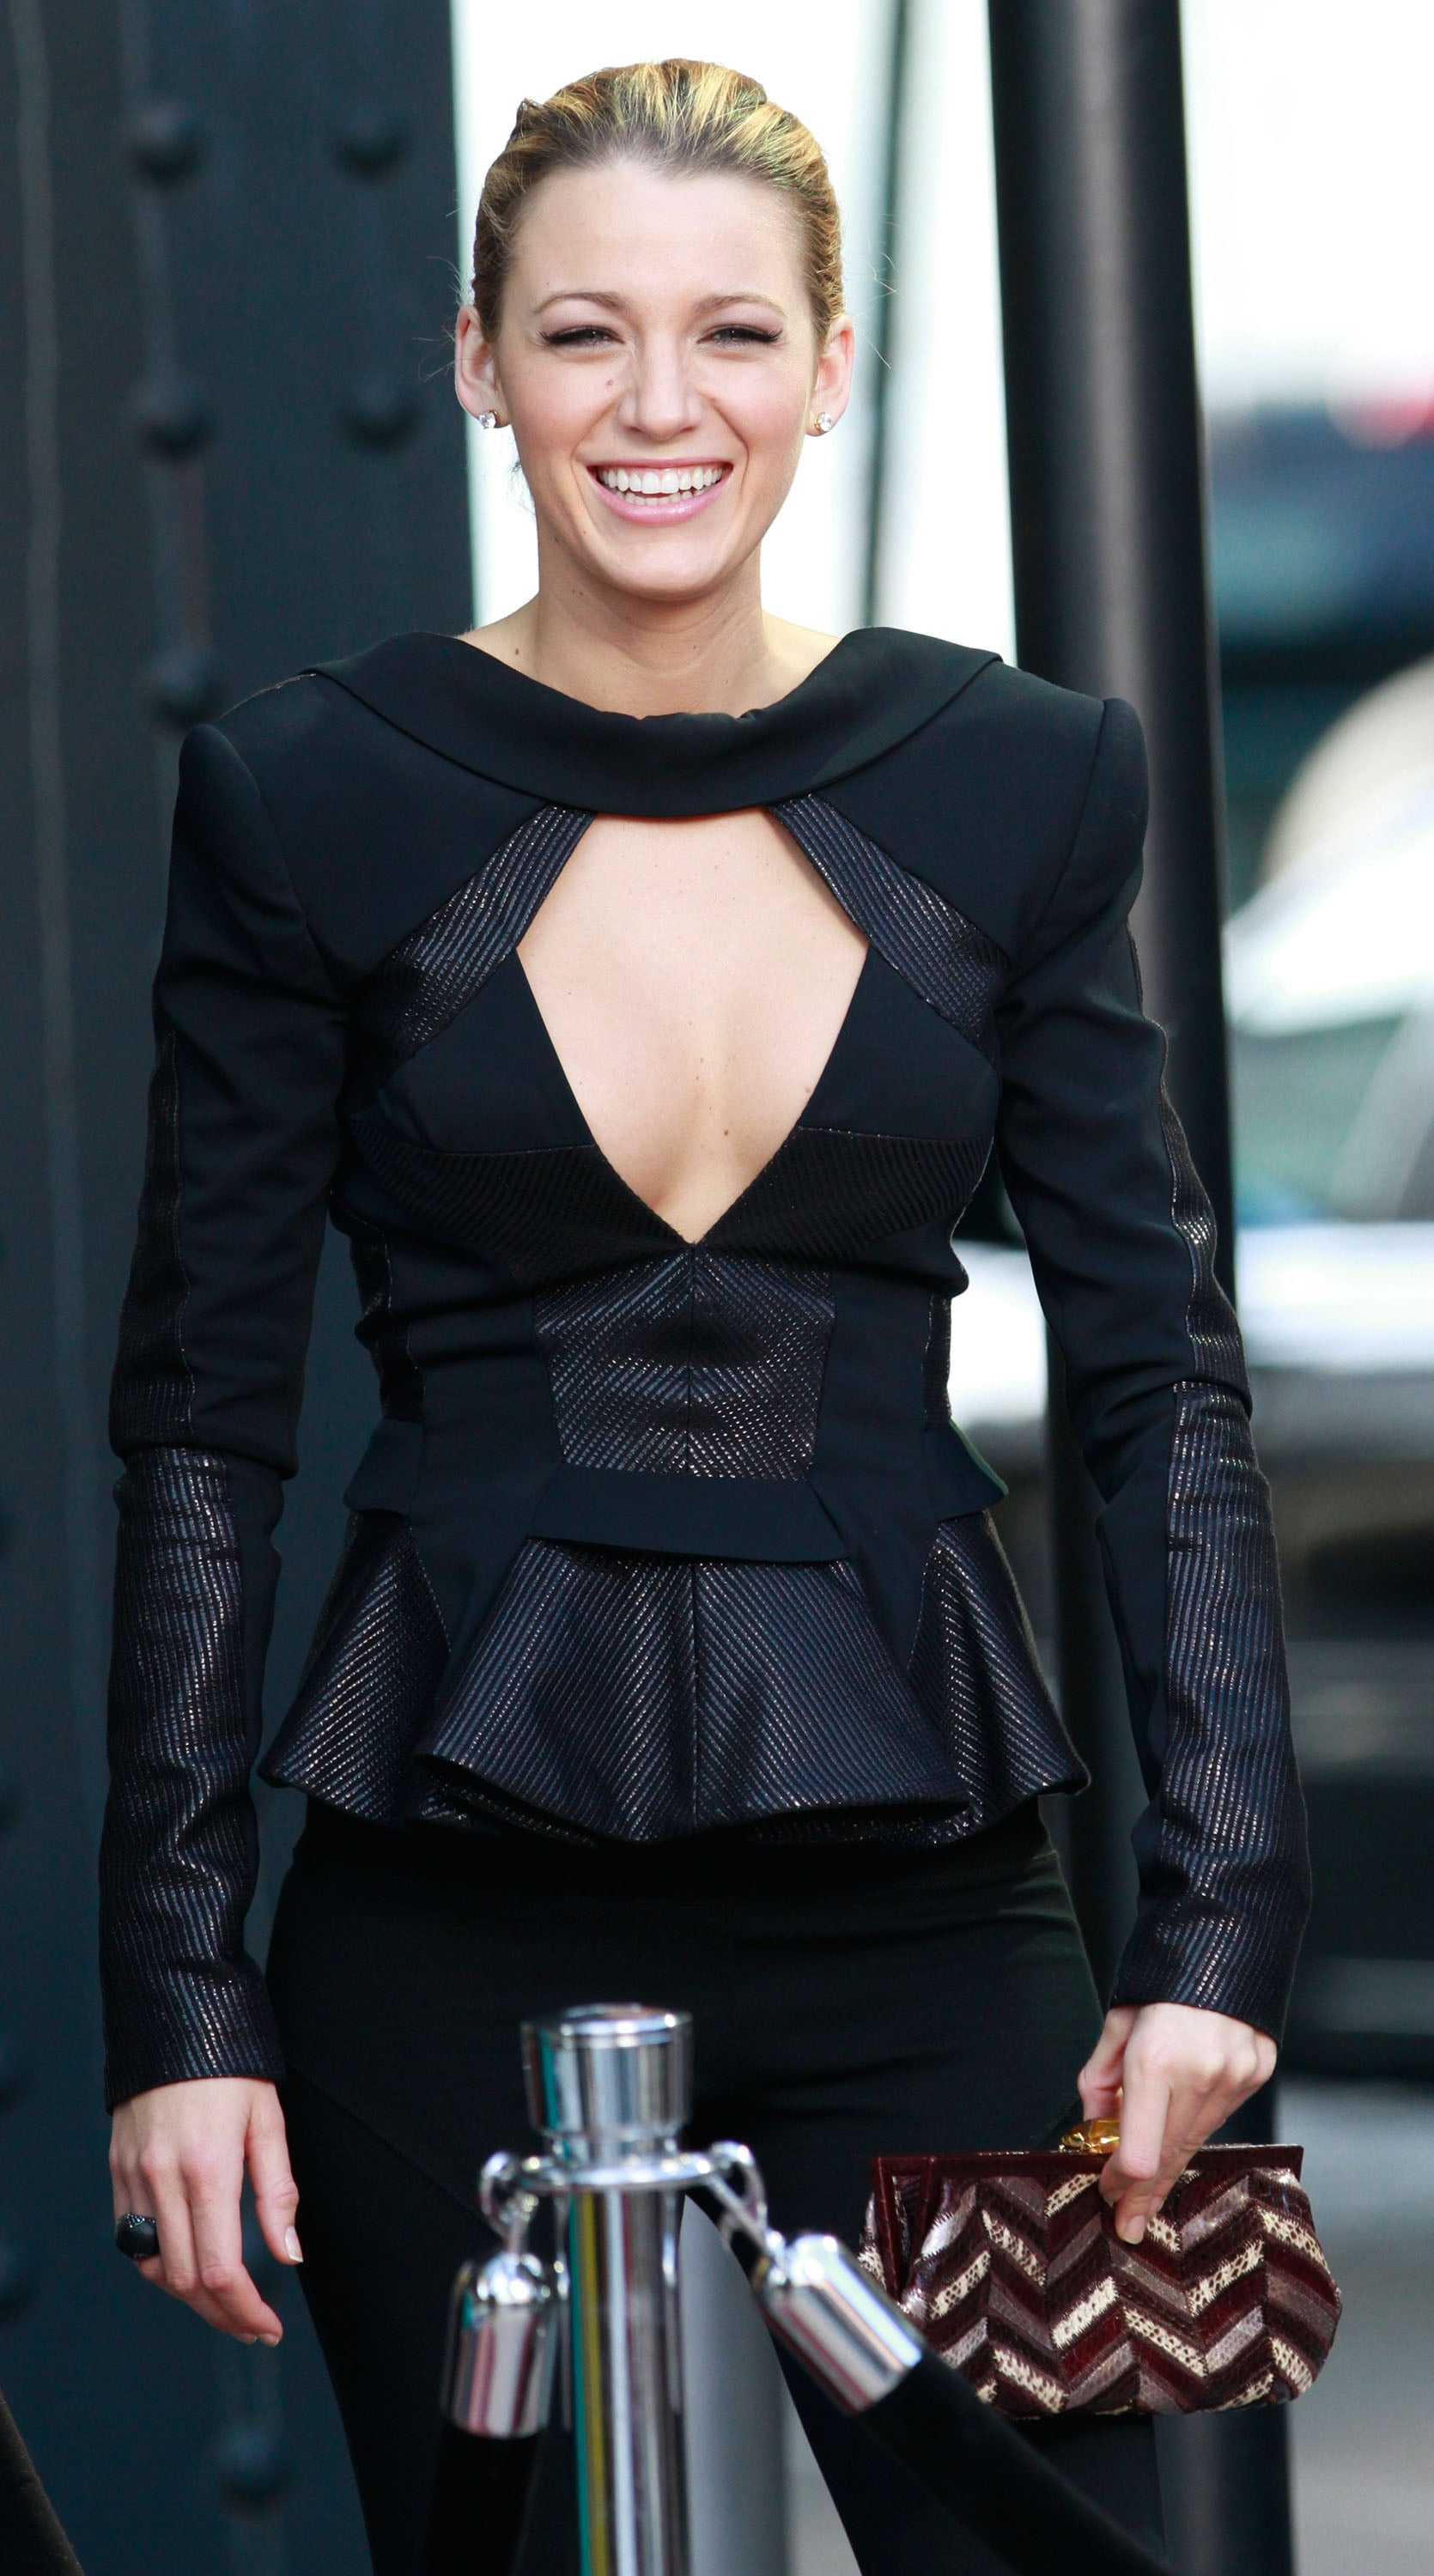 Blake Lively wore a dramatic black peplum top and bright smile, while shooting on location in NYC in August 2010.